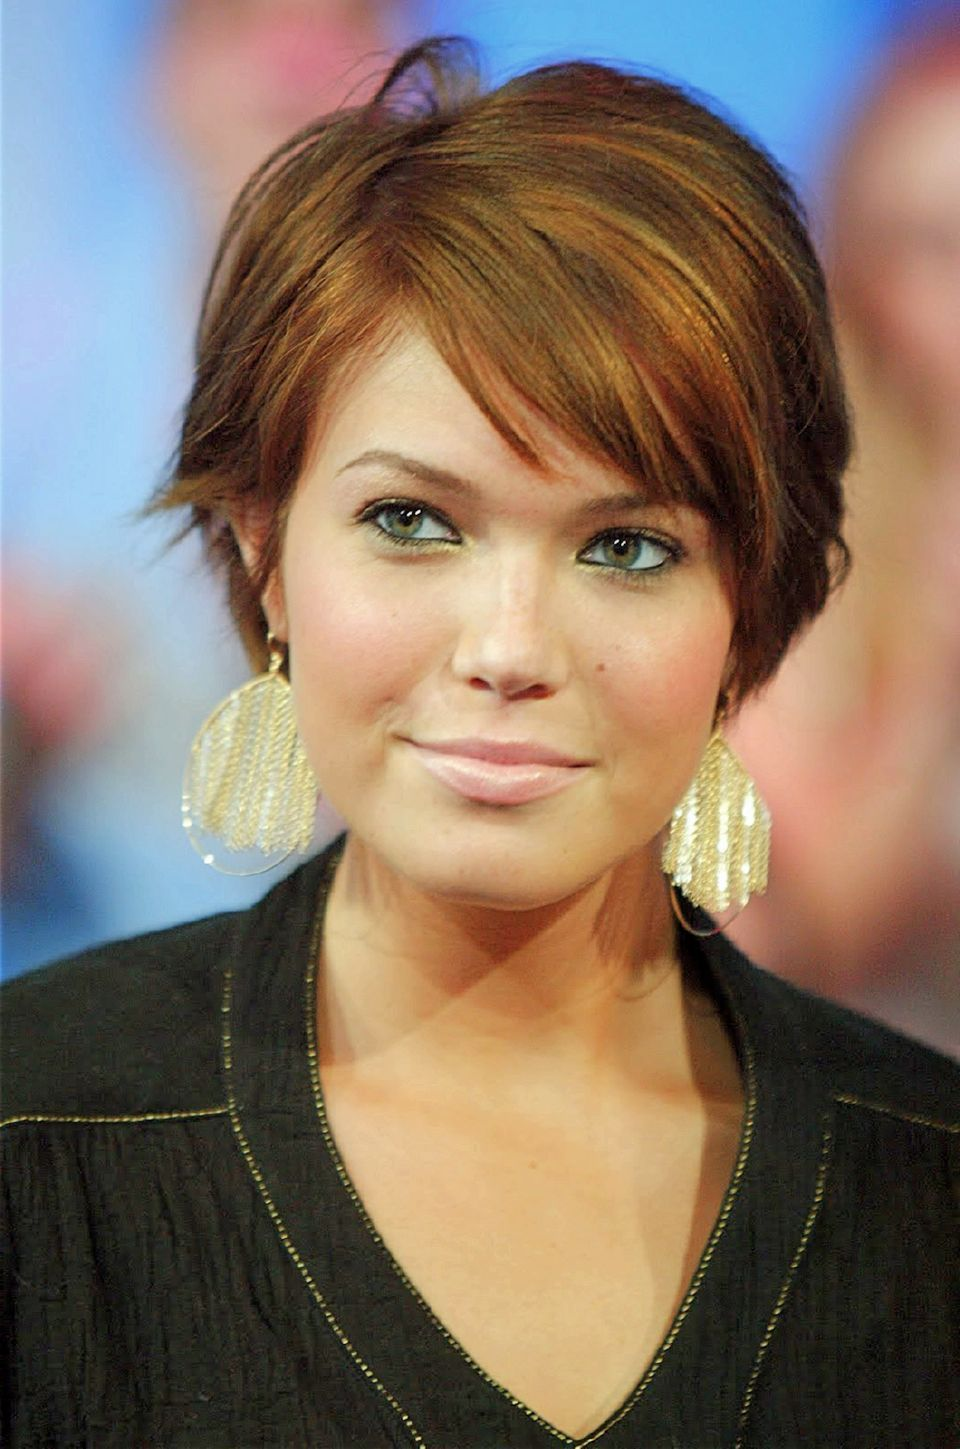 short hairstyle ideas for round faces chic haircuts you have to